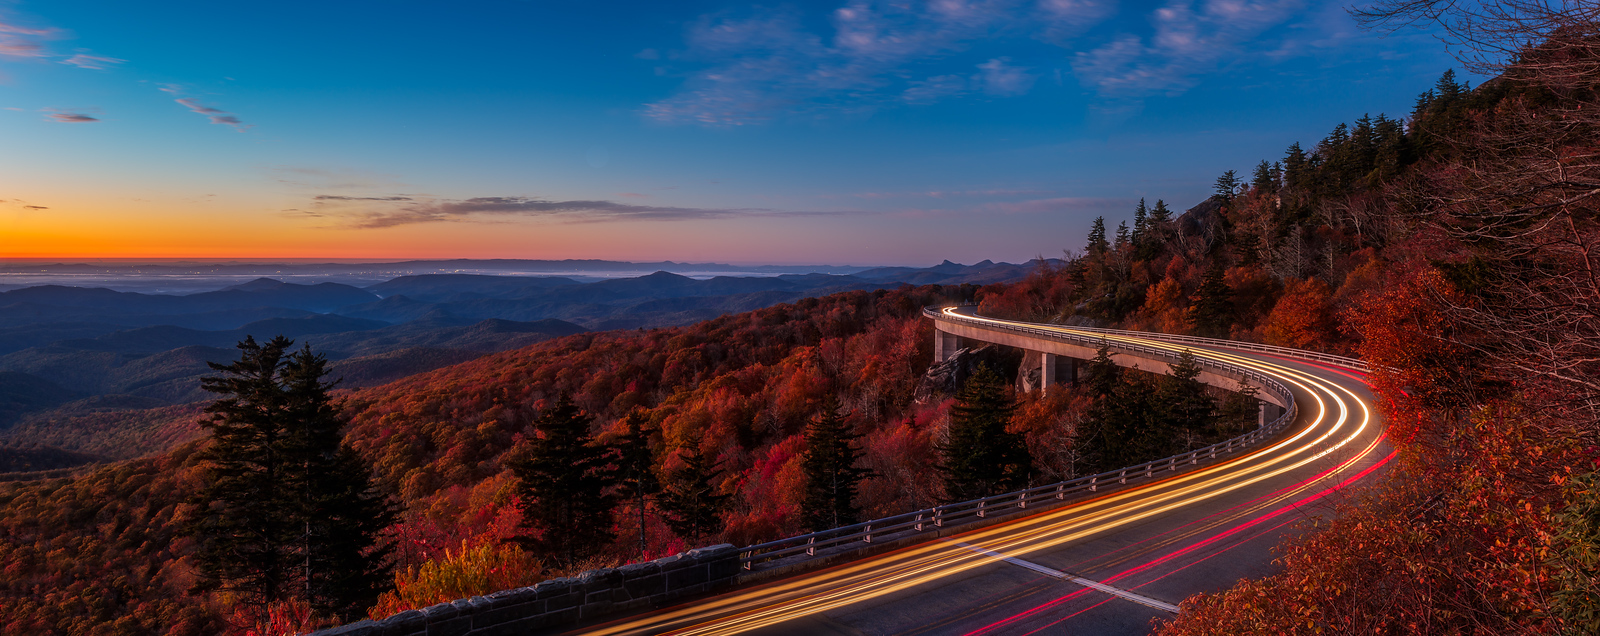 linn cove viaduct asheville